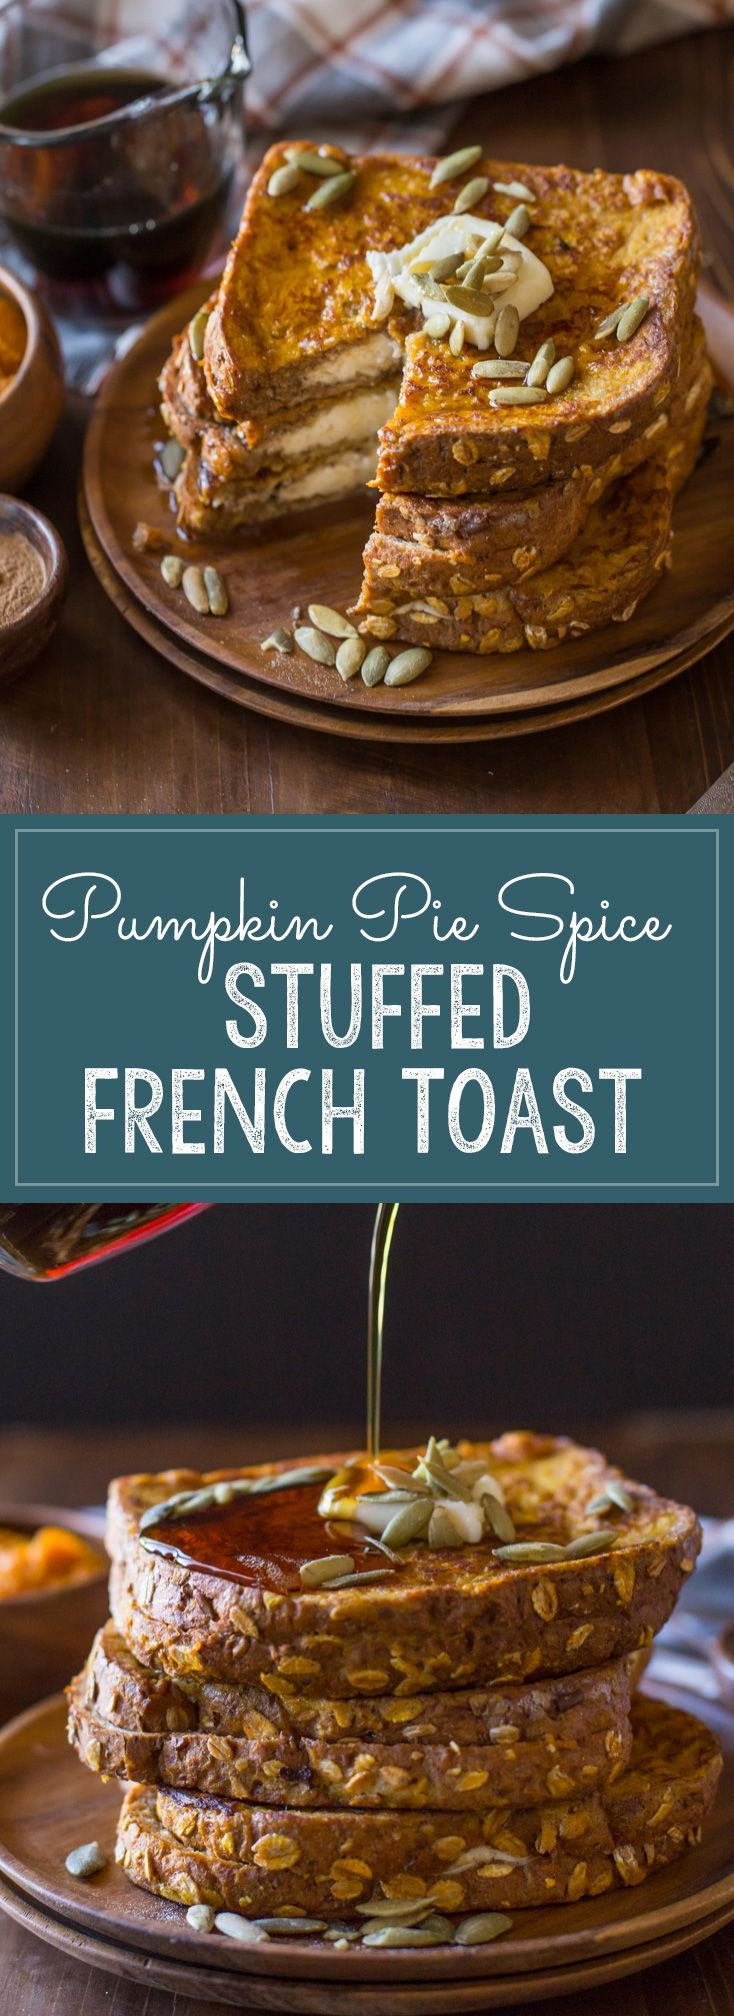 Pumpkin Pie Spiced Stuffed French Toast - Perfect for extra special holiday breakfasts, or slow weekend mornings that deserve something extra delicious!